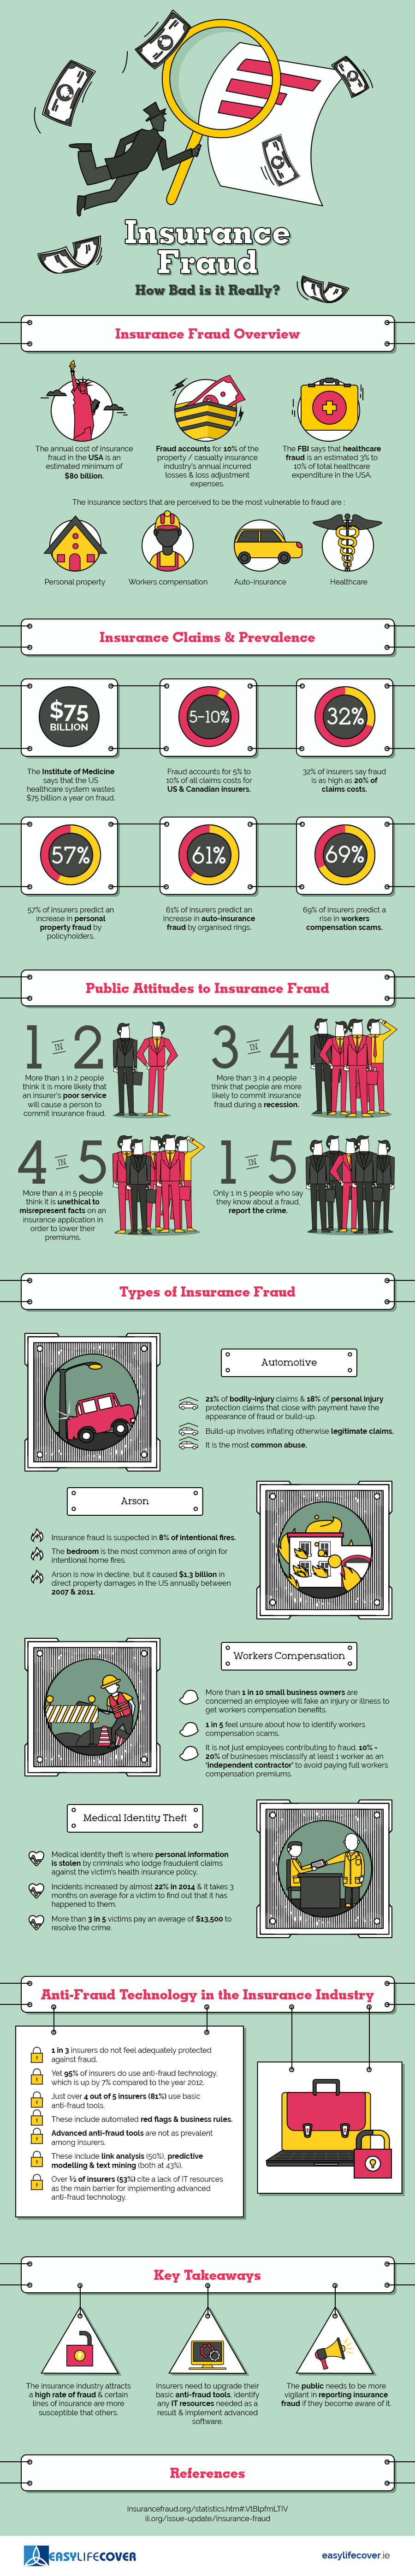 The-World-of-Insurance-Fraud-Infographic-plaza